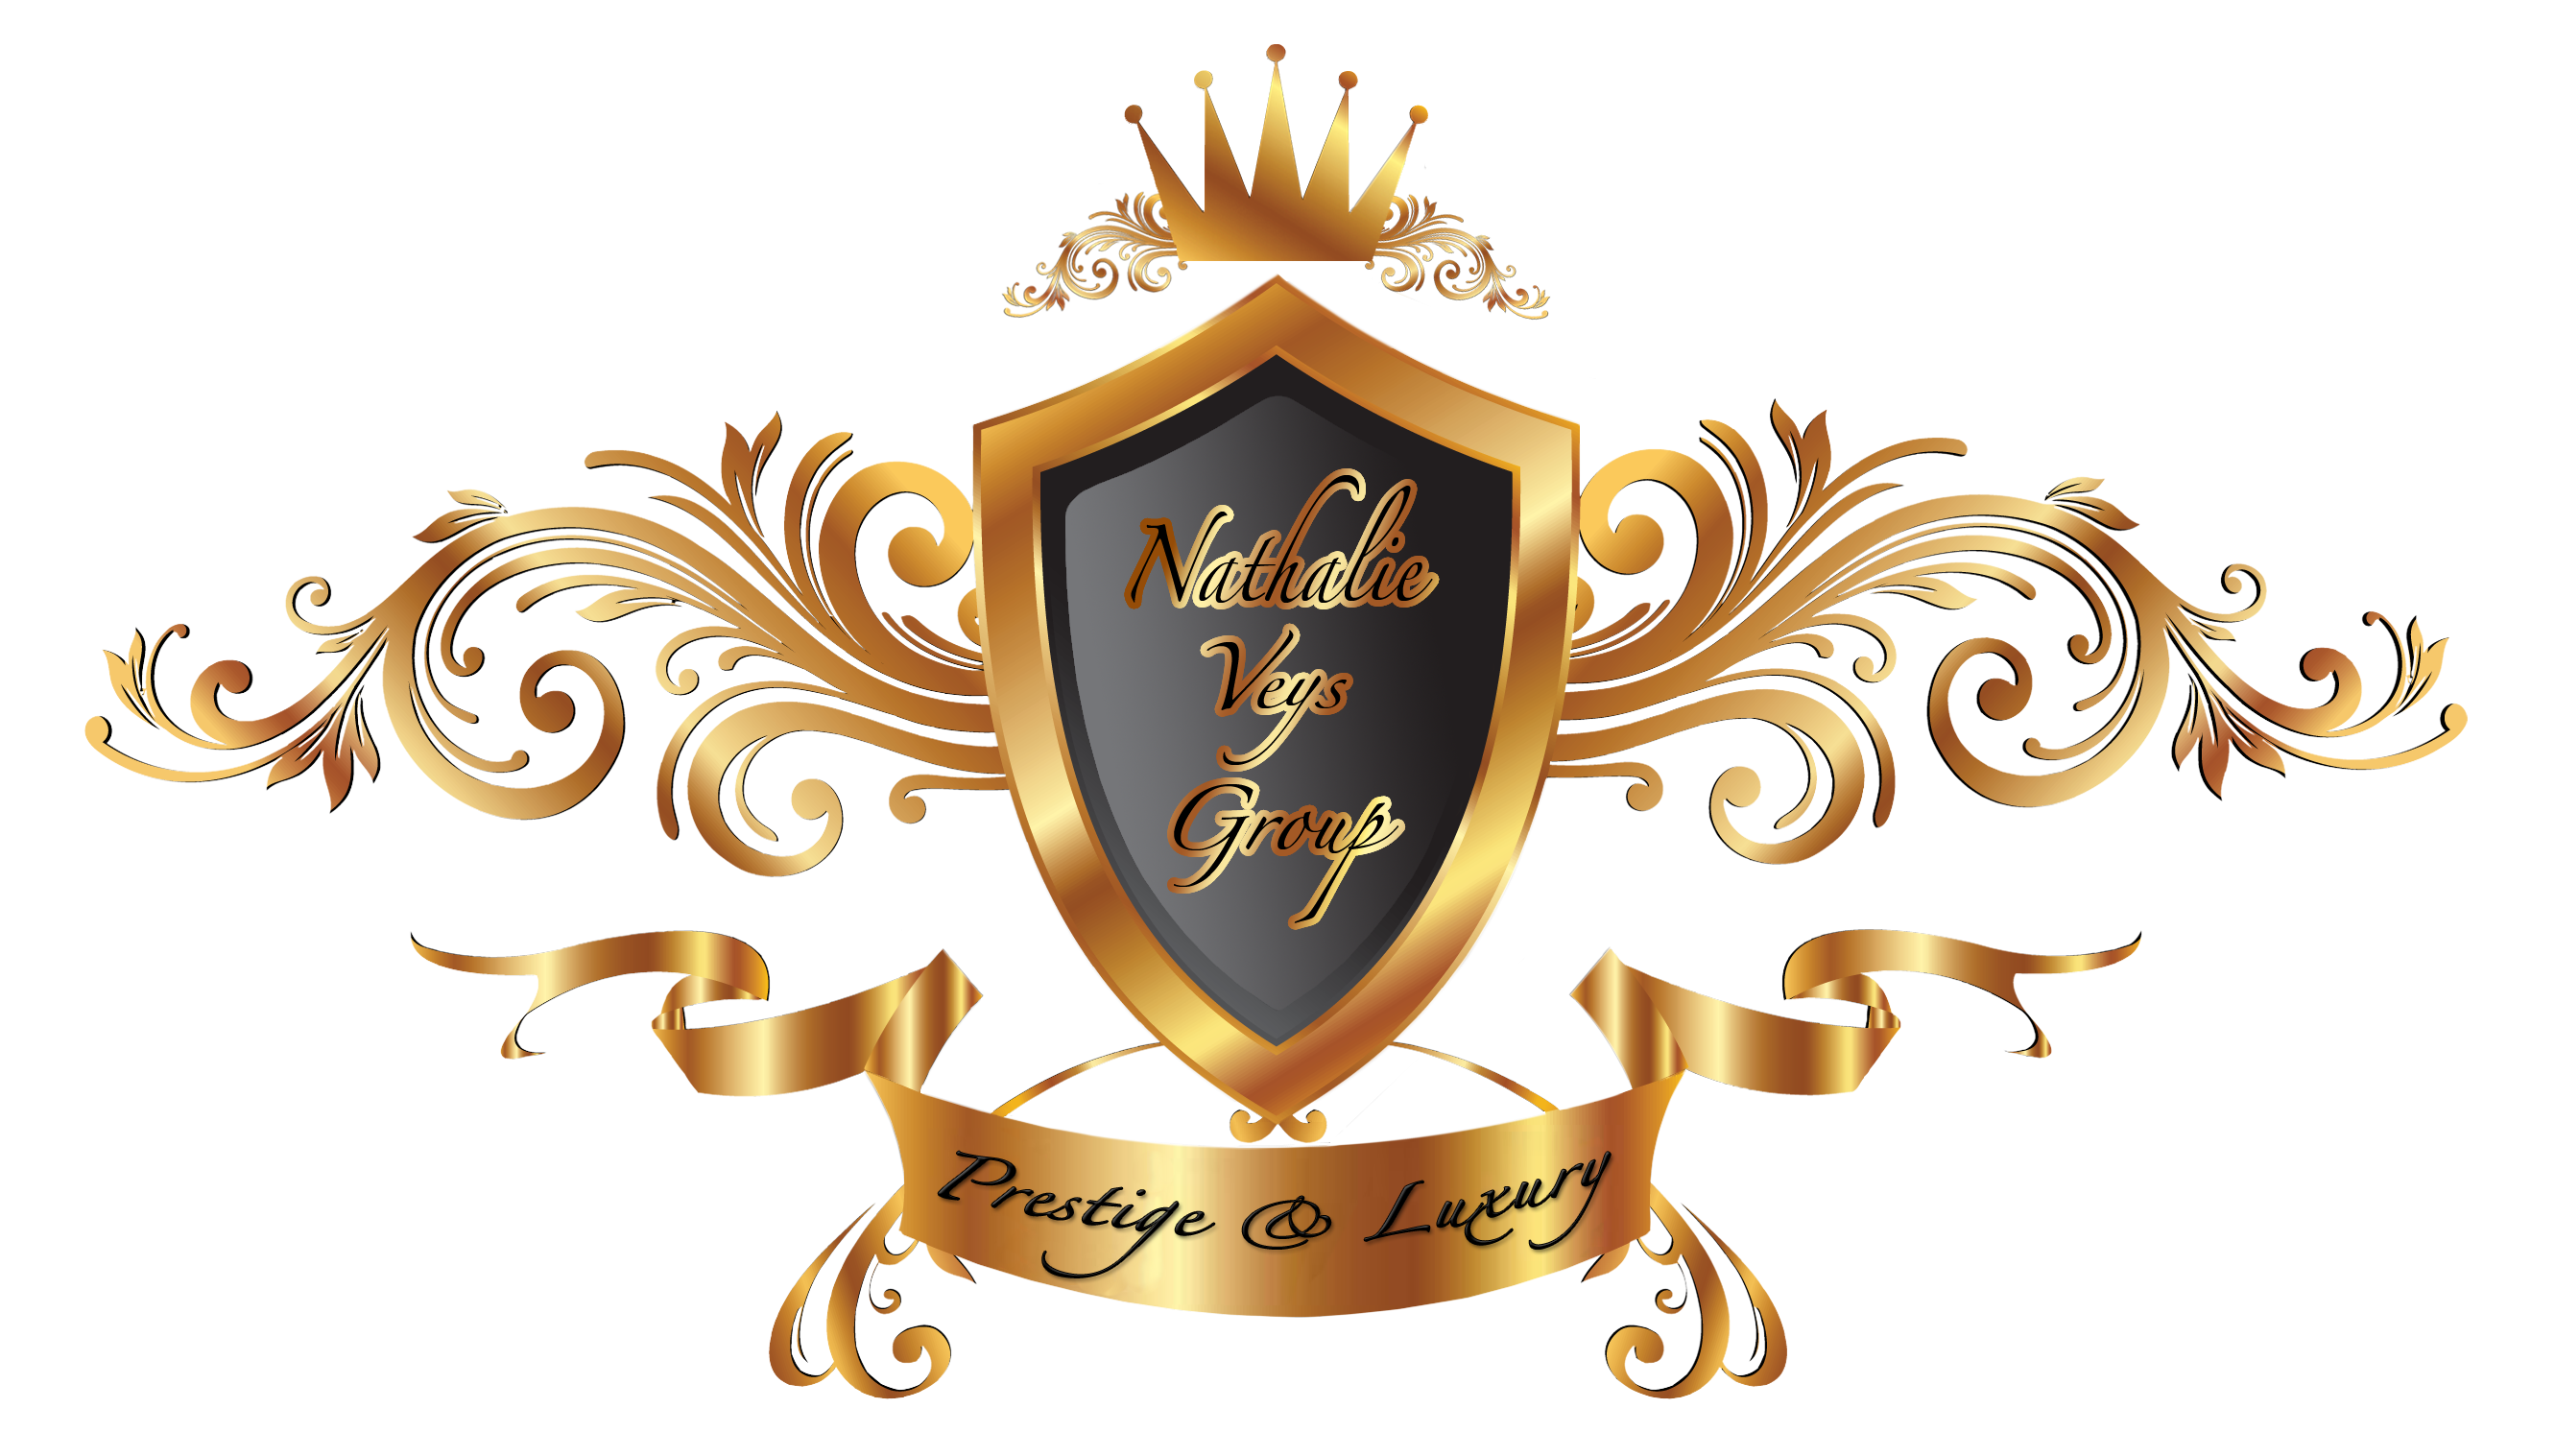 Prestige & Luxury - Nathalie Veys Group LOGO (Transparent)